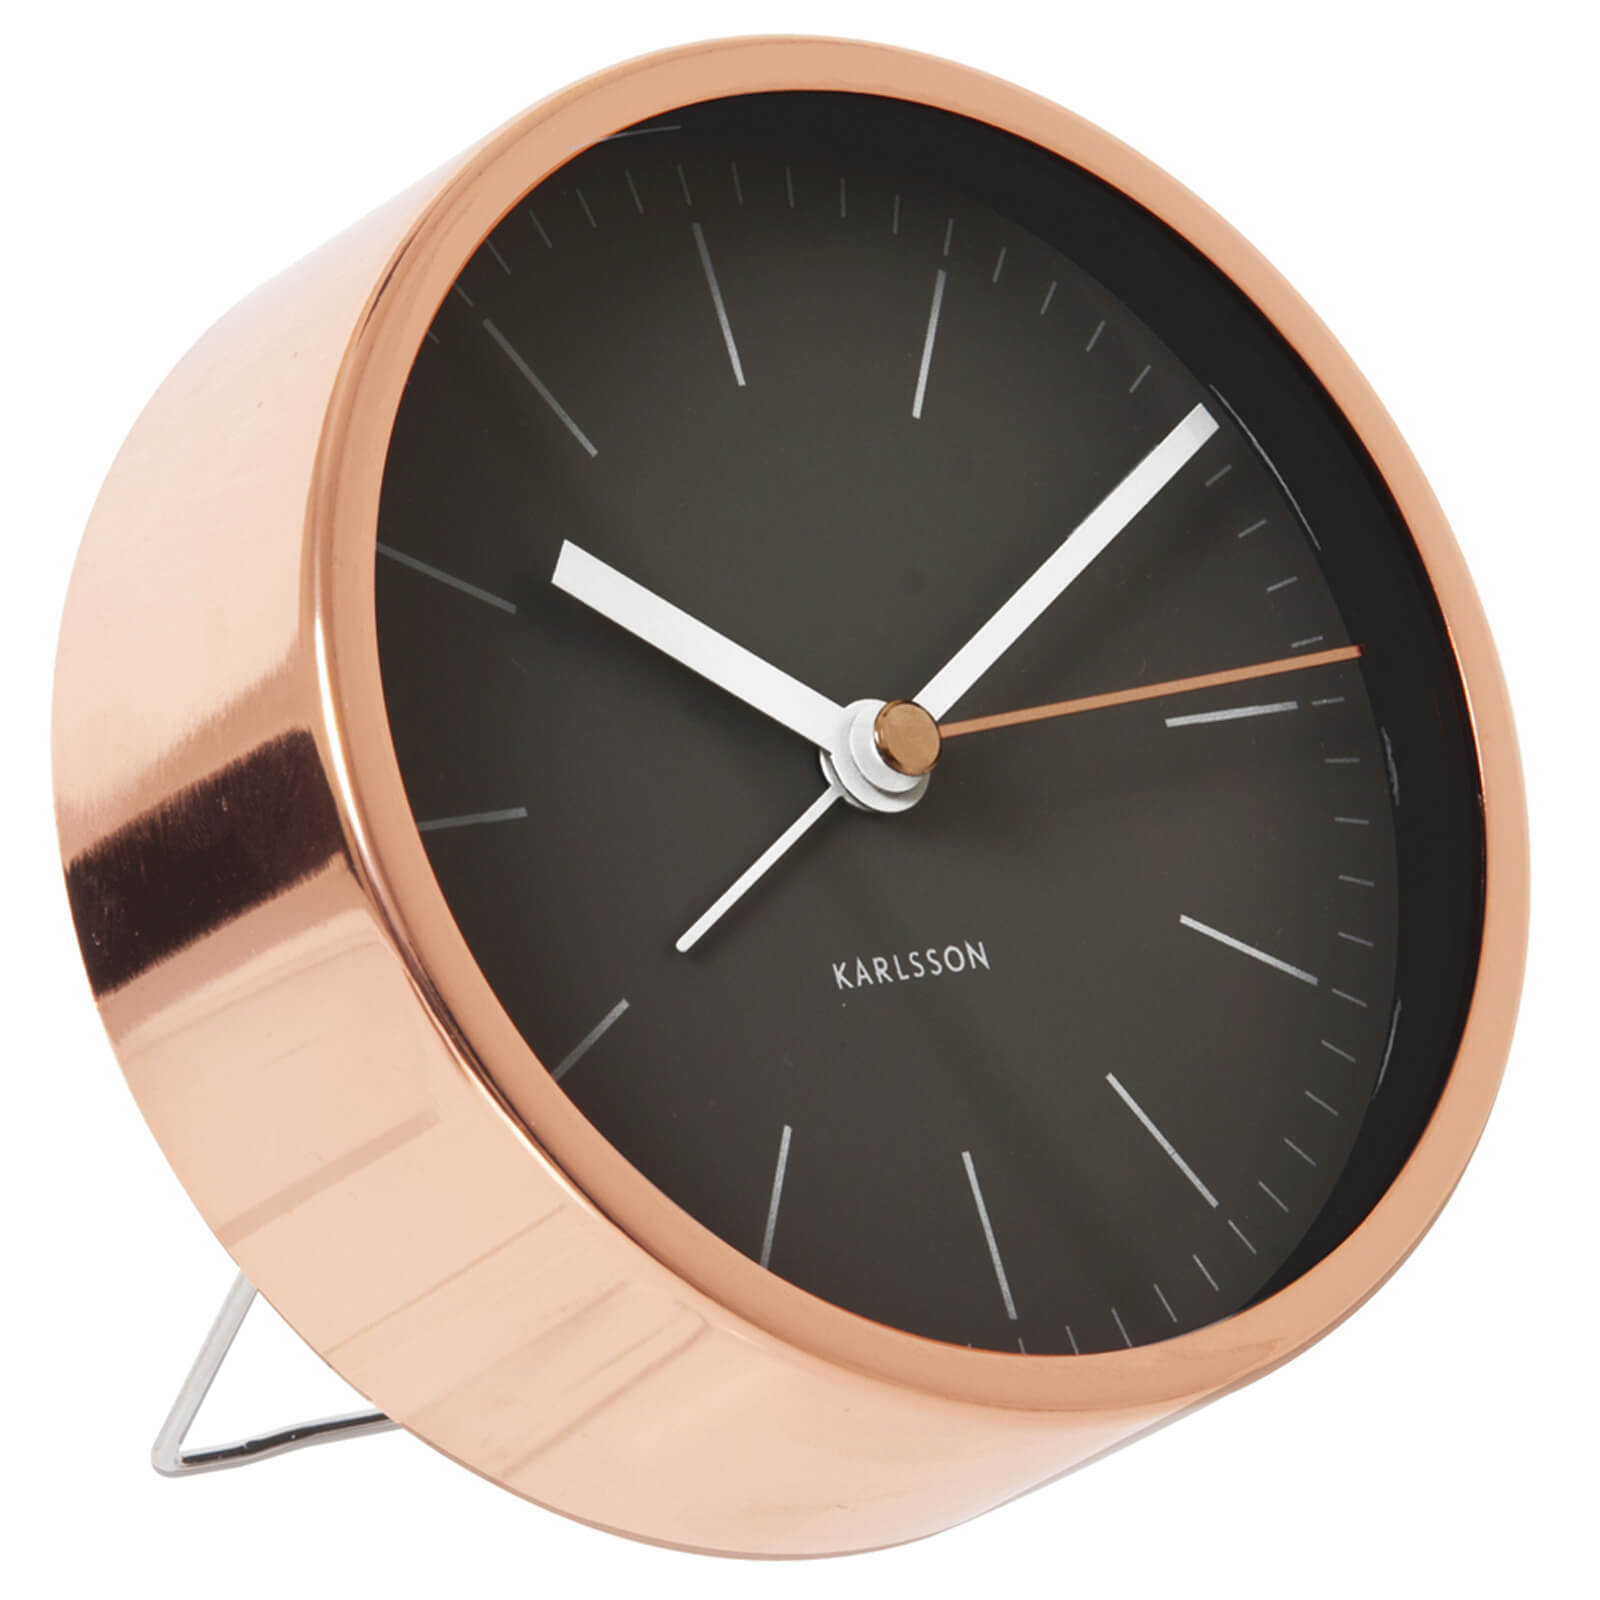 Karlsson Minimal Alarm Clock - Black Steel Copper Plated